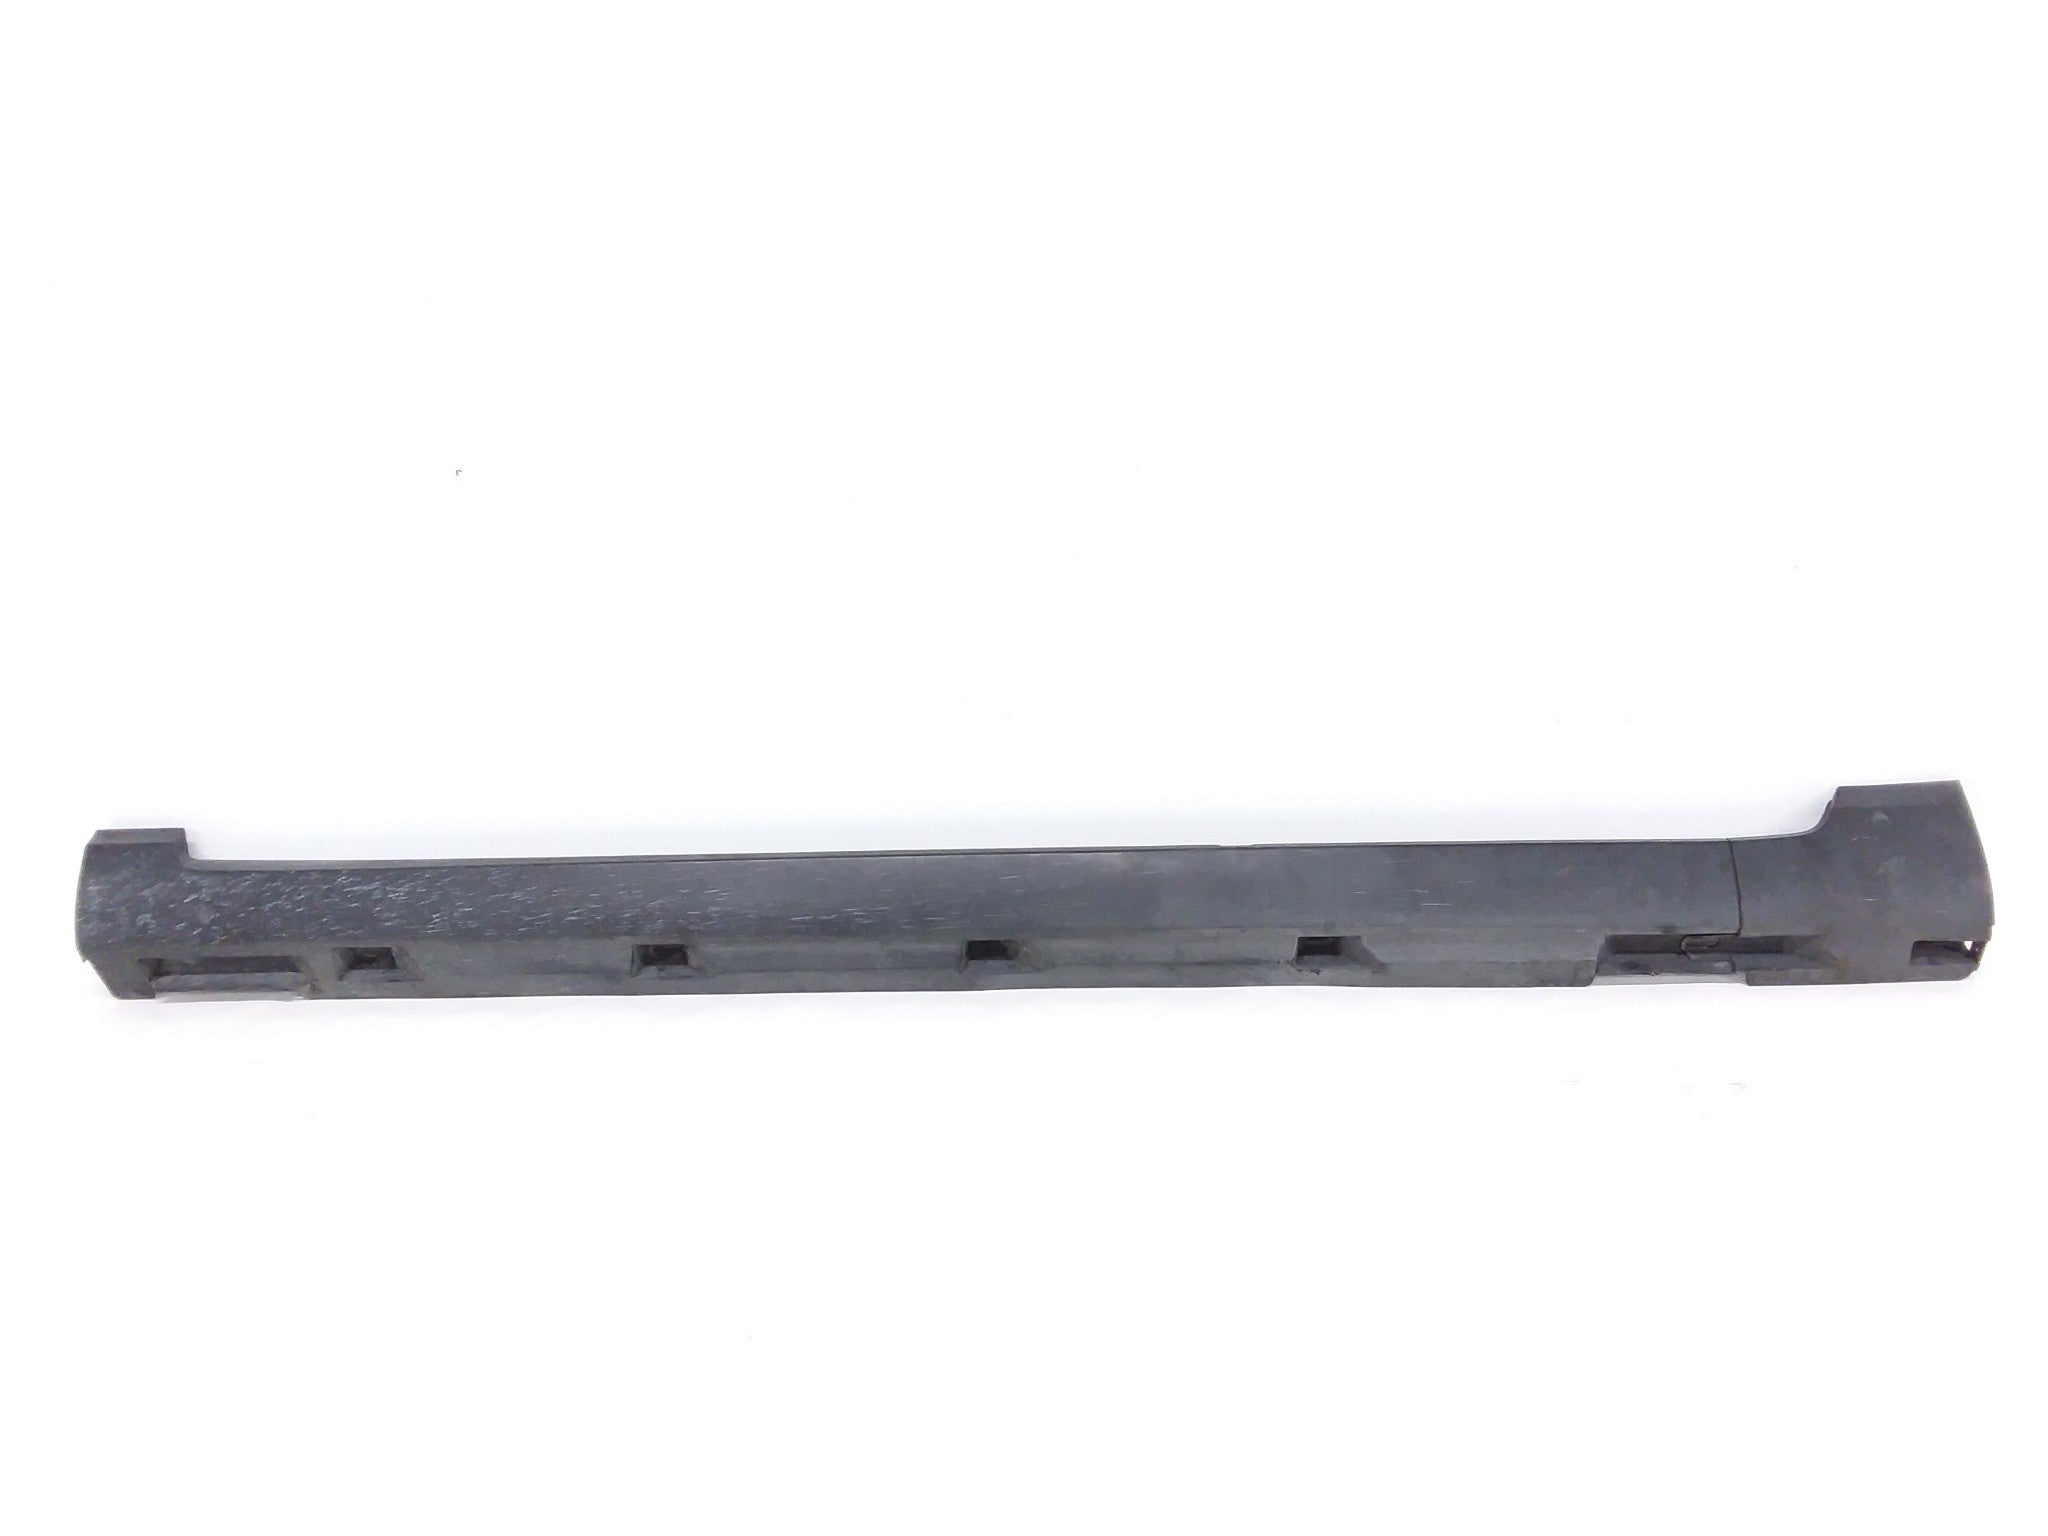 VW PASSAT LEFT DRIVER SIDE ROCKER PANEL SKIRT MOLDING TRIM 2006 2007 2010  OEM